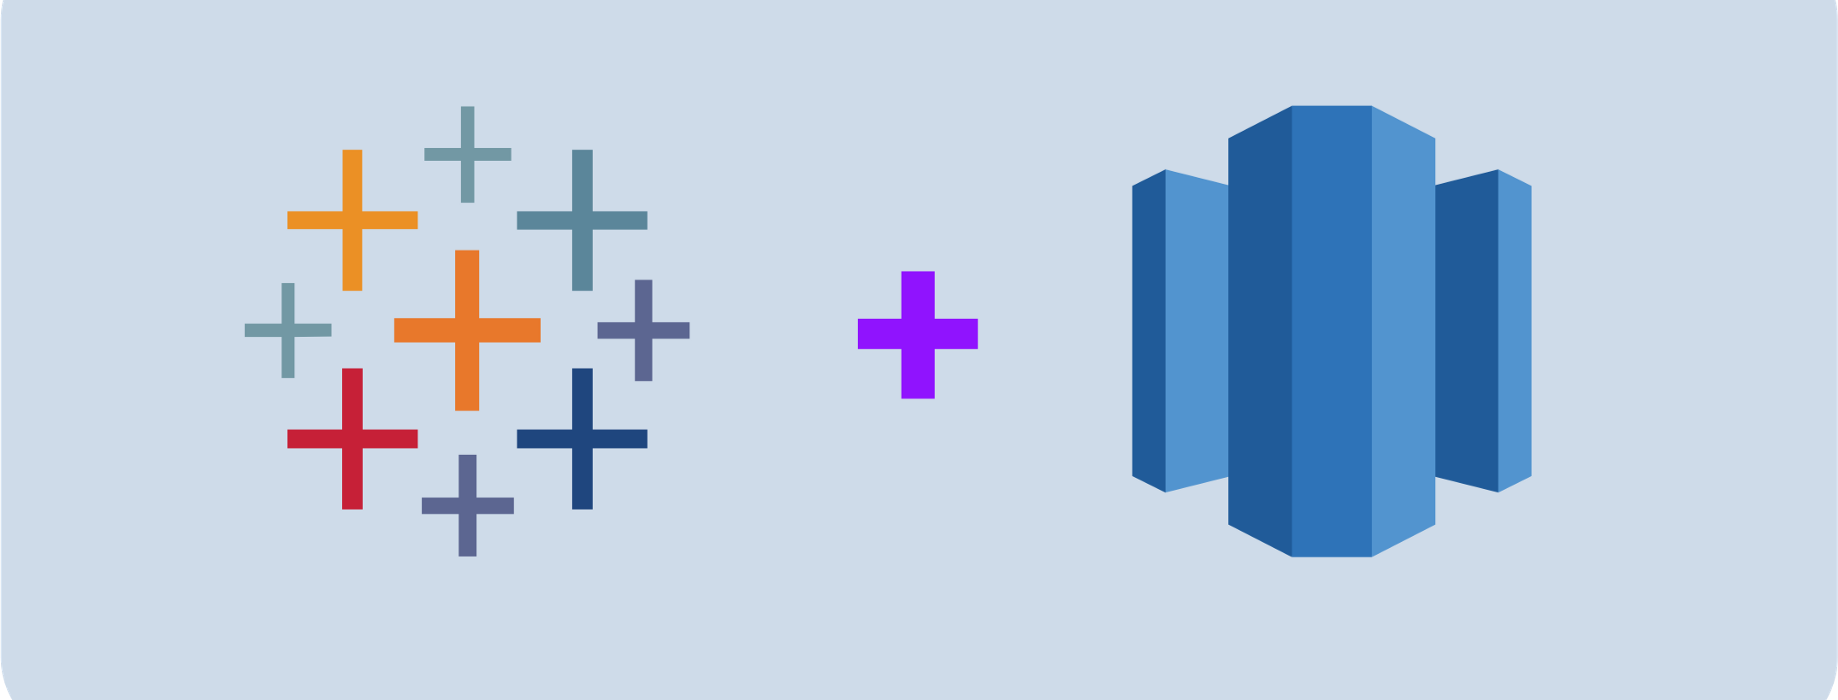 How To Guide Integrating A Powerful Team: Tableau And Redshift